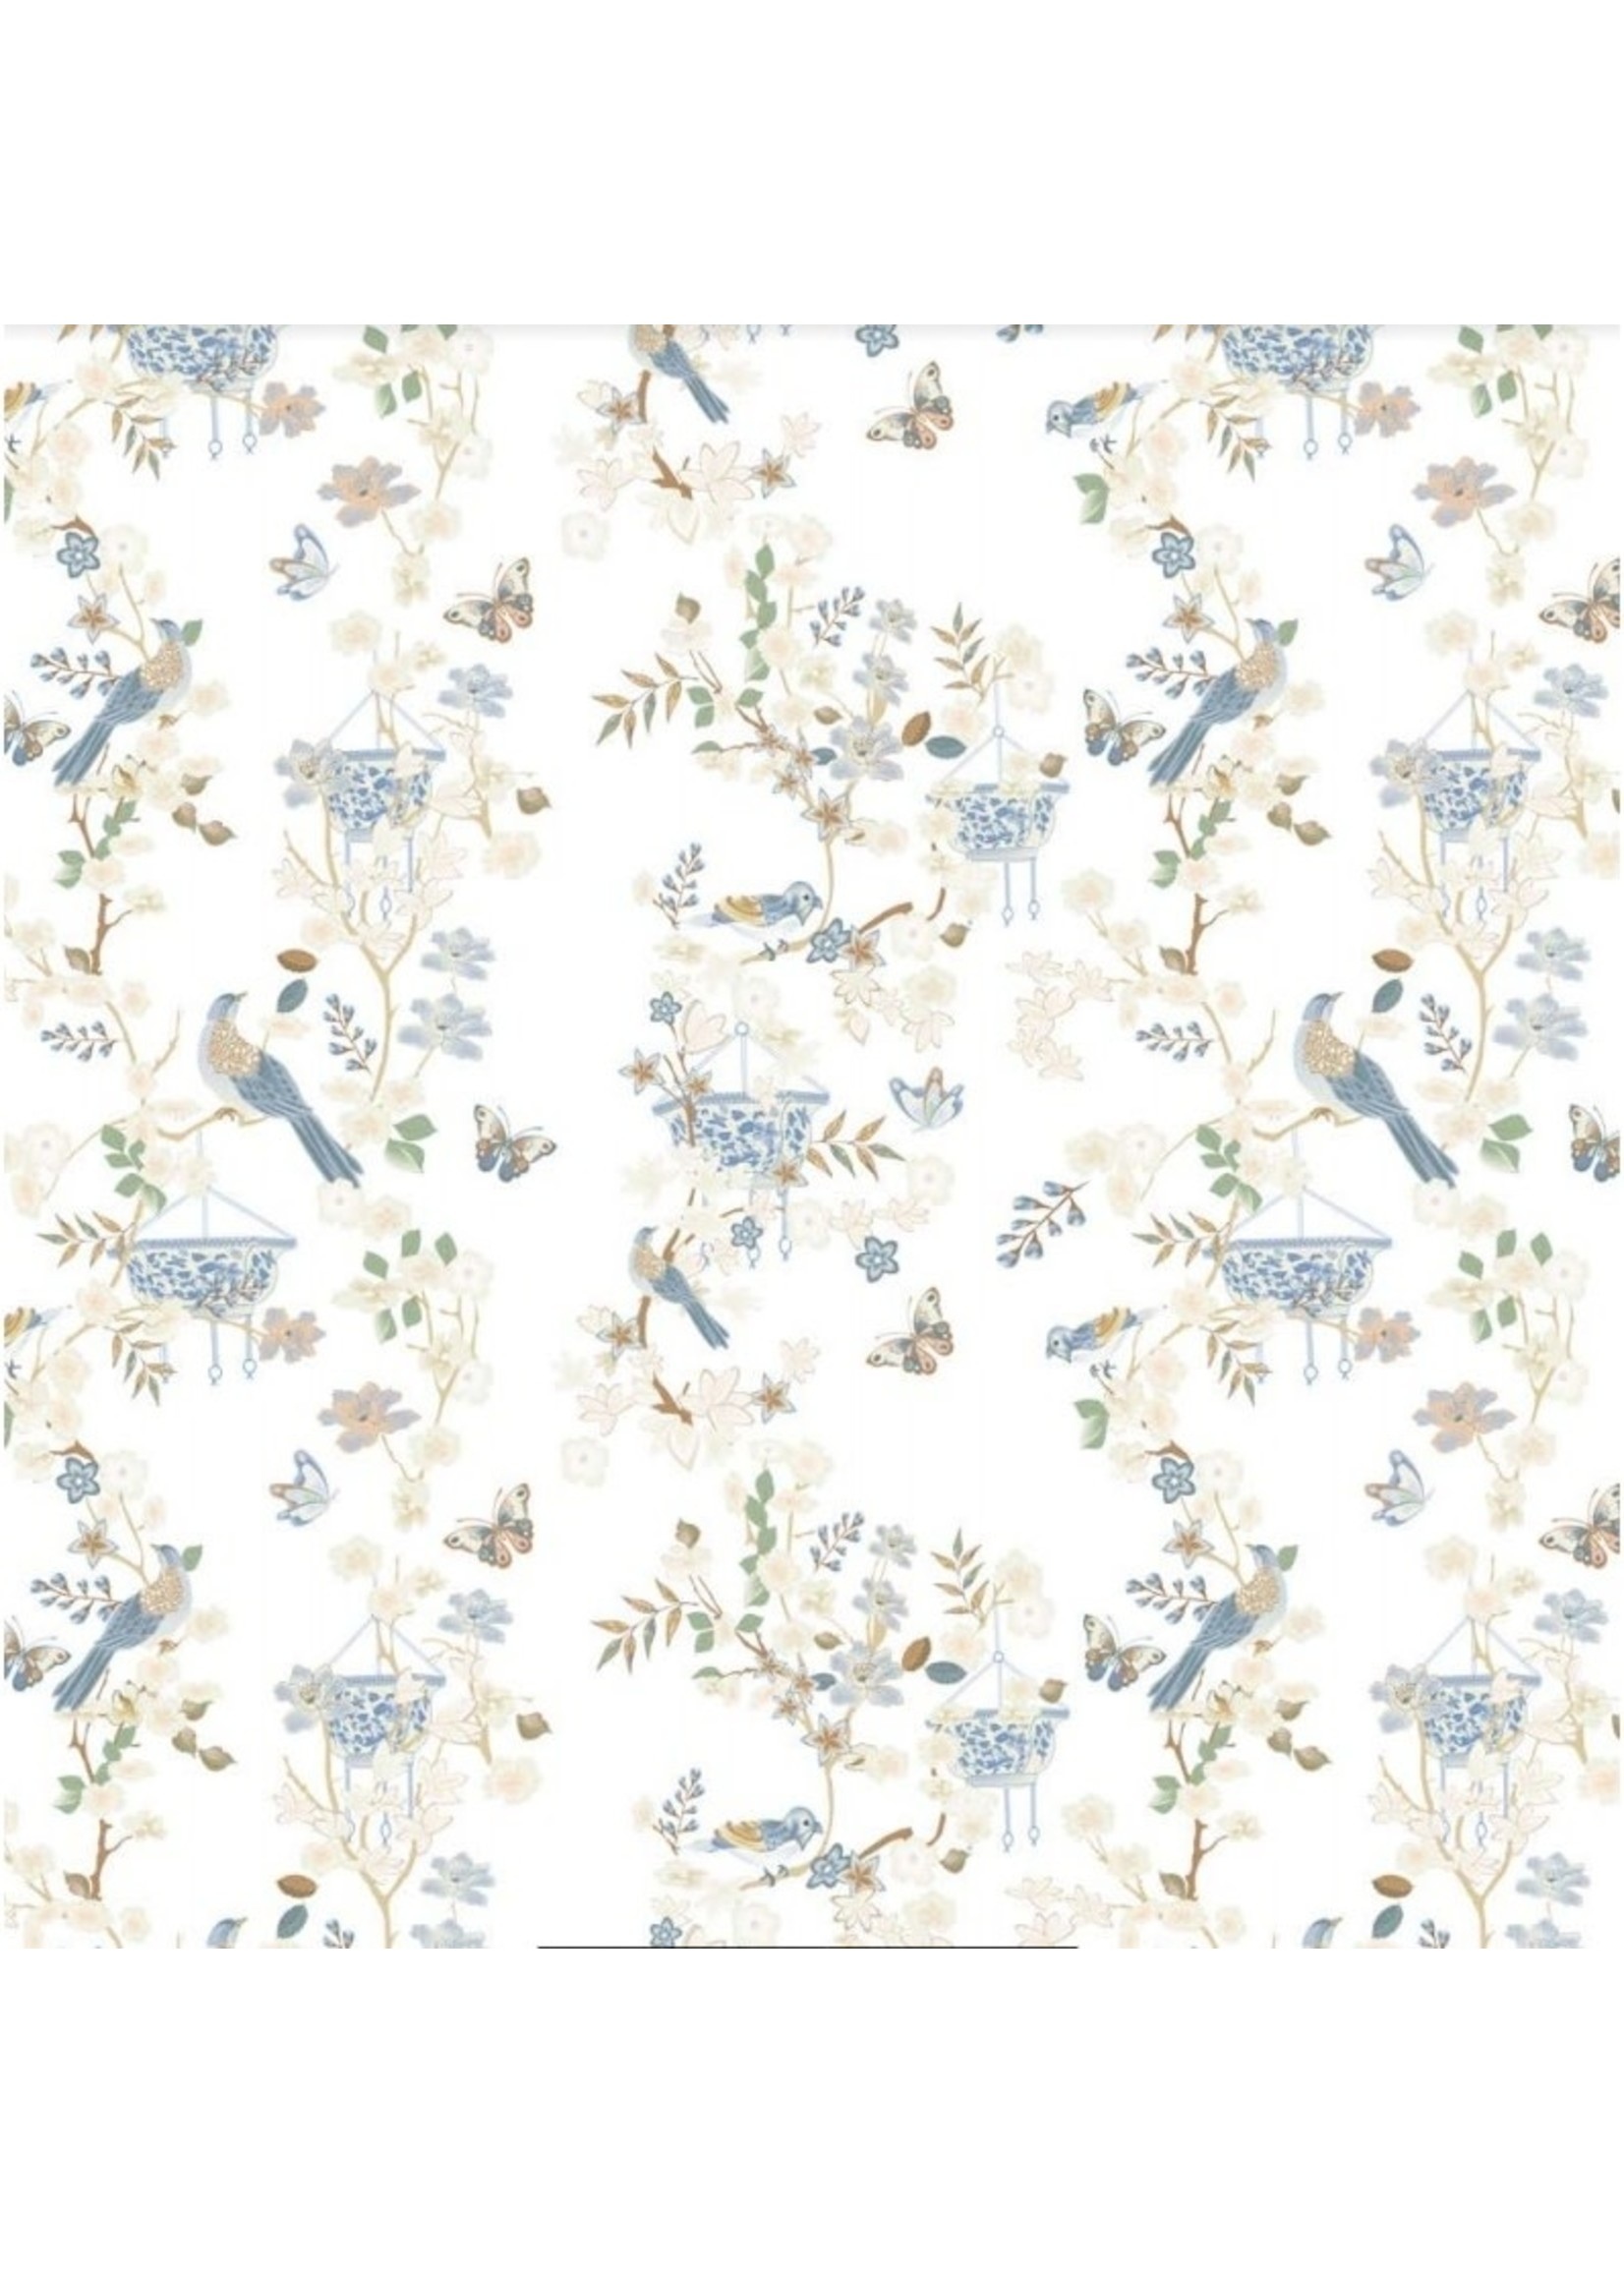 Gift Wrap - Ivory Chinoiserie (8' roll)